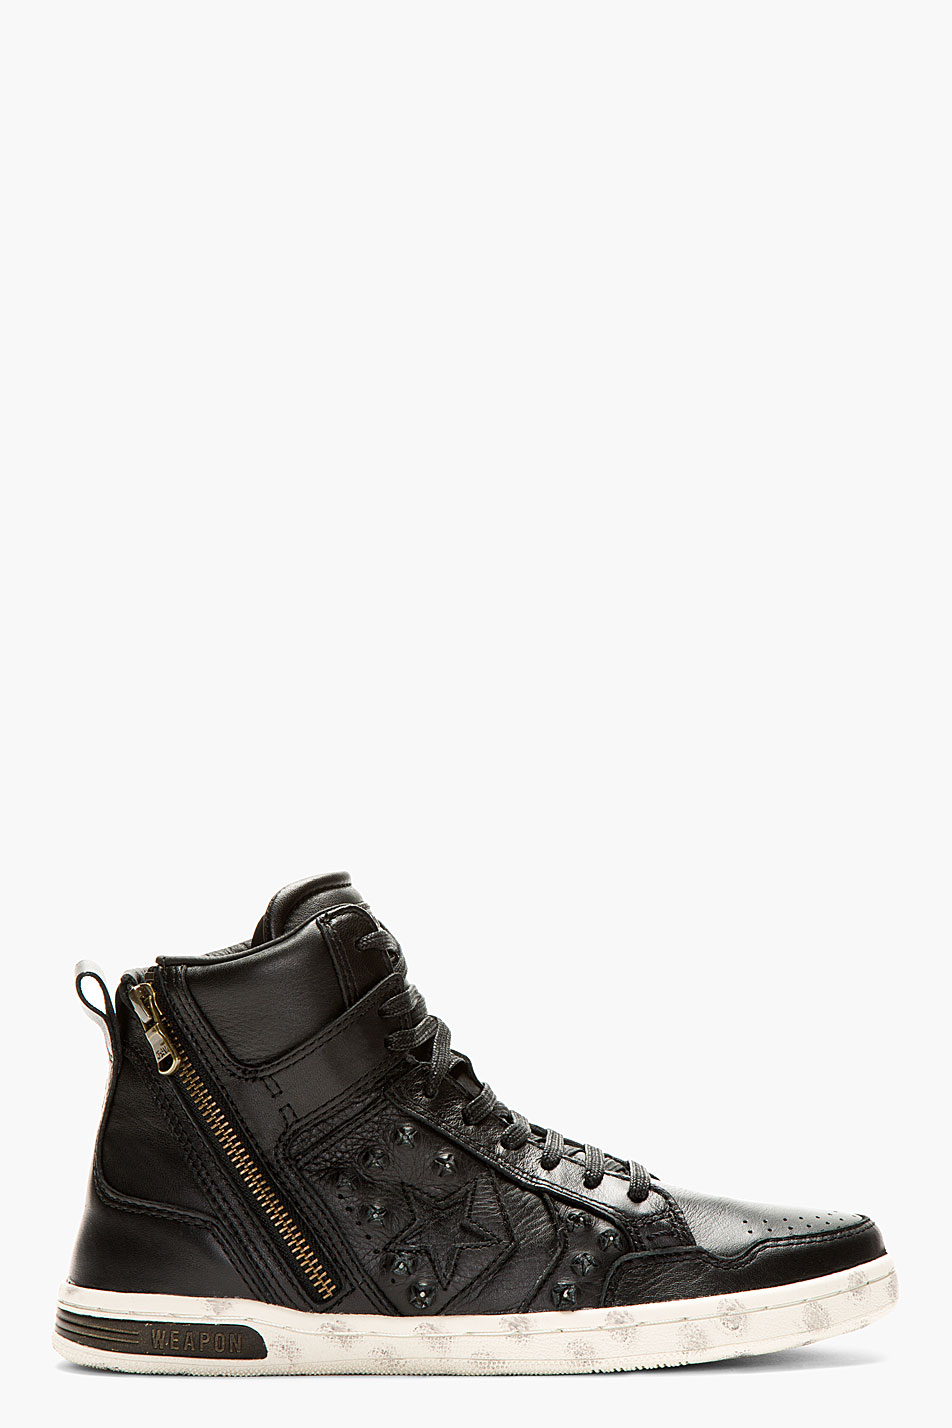 Converse Black Leather Hidden Hardware Weapon High Top